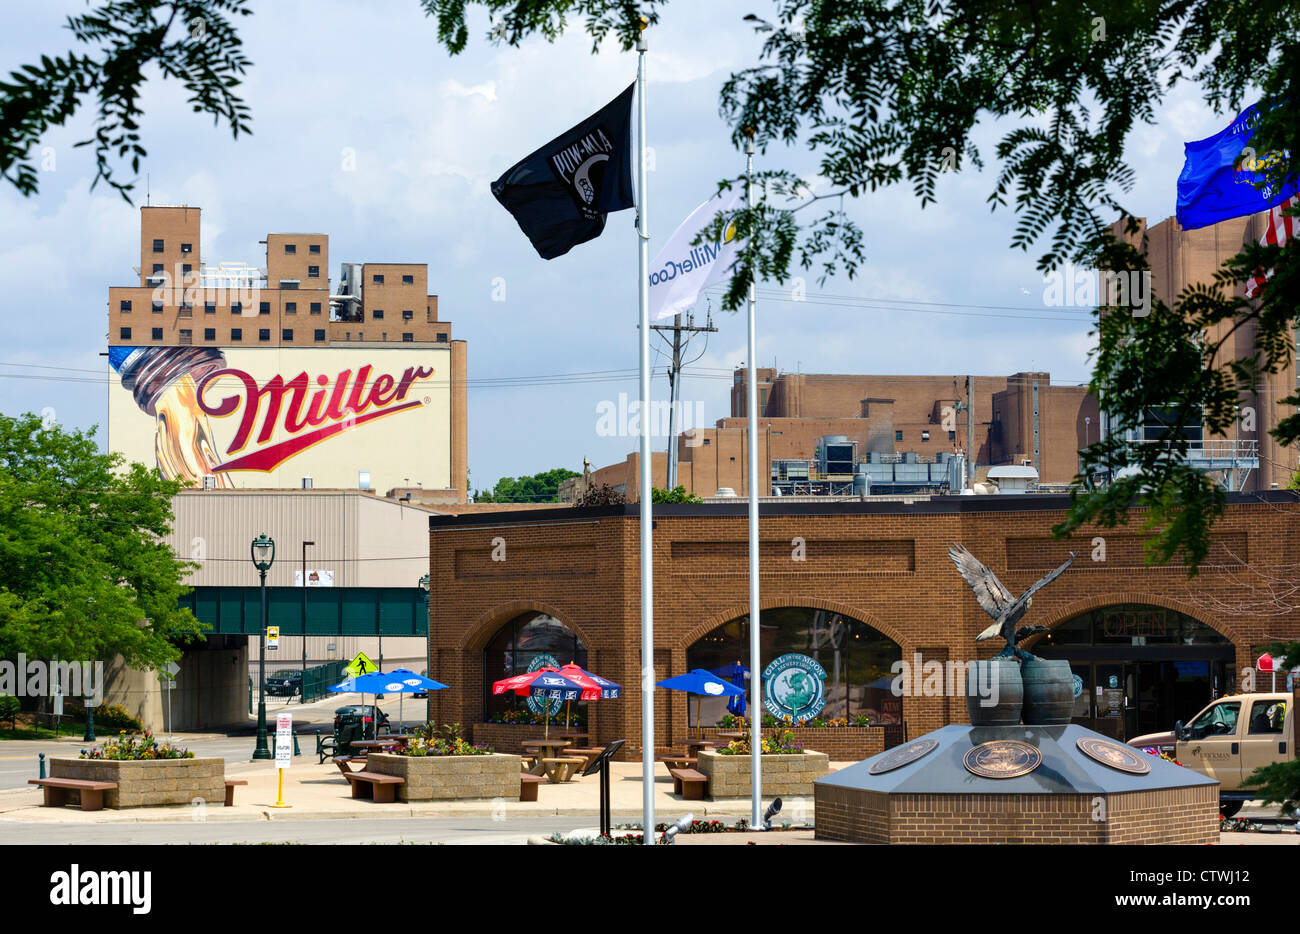 Miller Coors brewery with the visitor center in the foreground, West State Street, Milwaukee, Wisconsin, USA - Stock Image